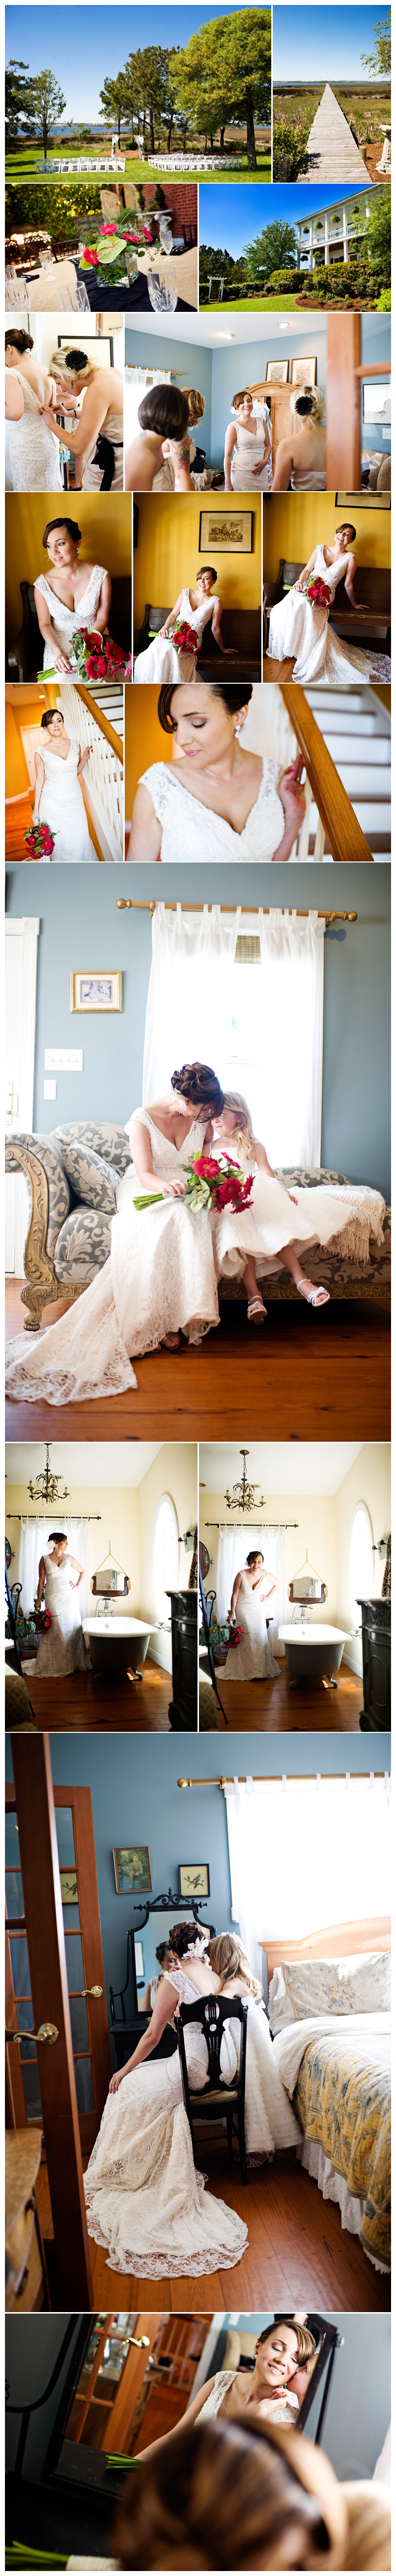 Emerald Isle NC Watson House wedding photographer